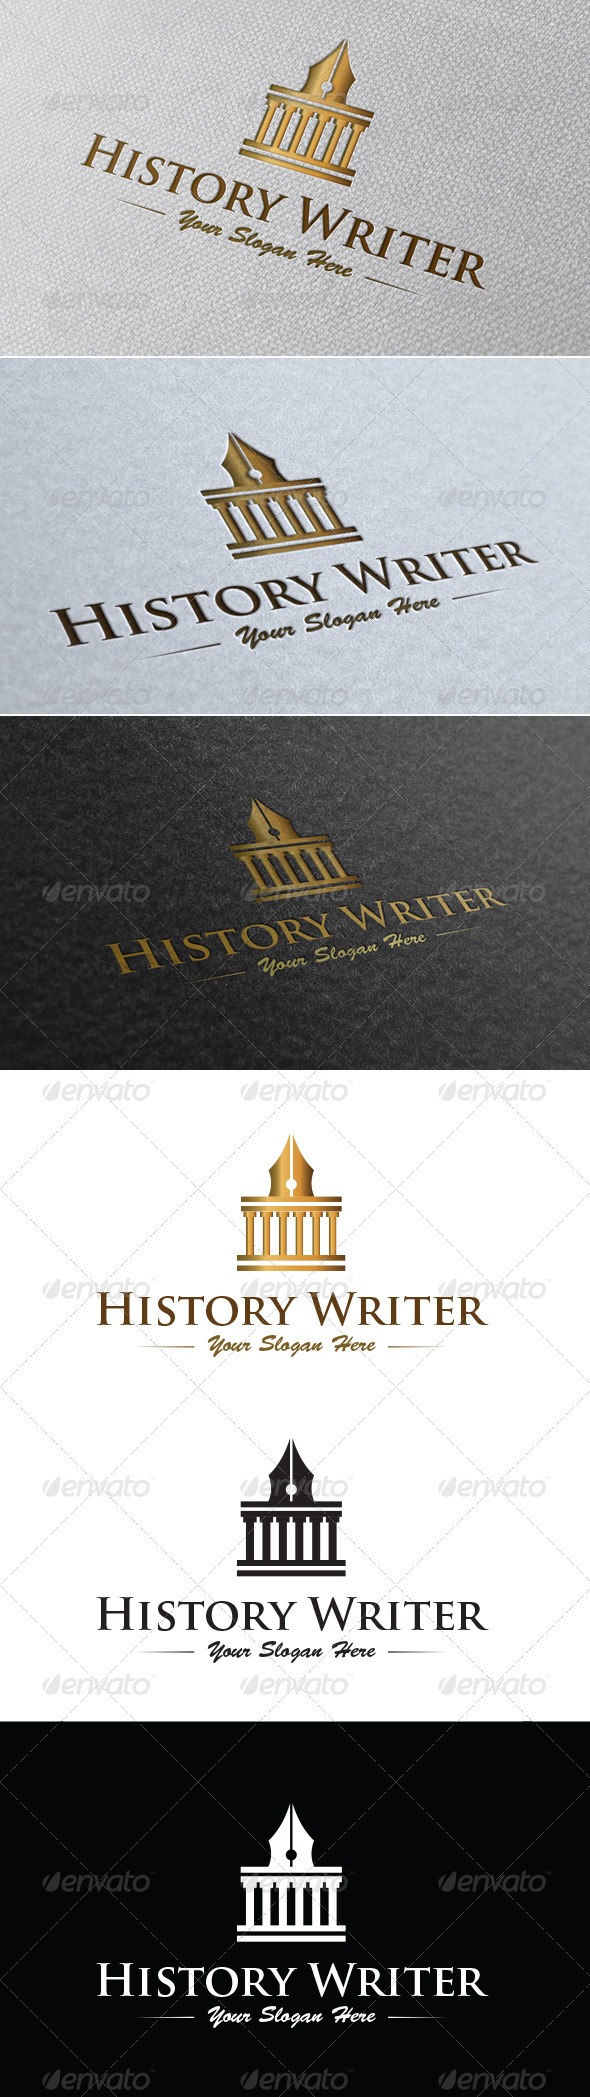 GraphicRiver History Writer Logo Template 7007975